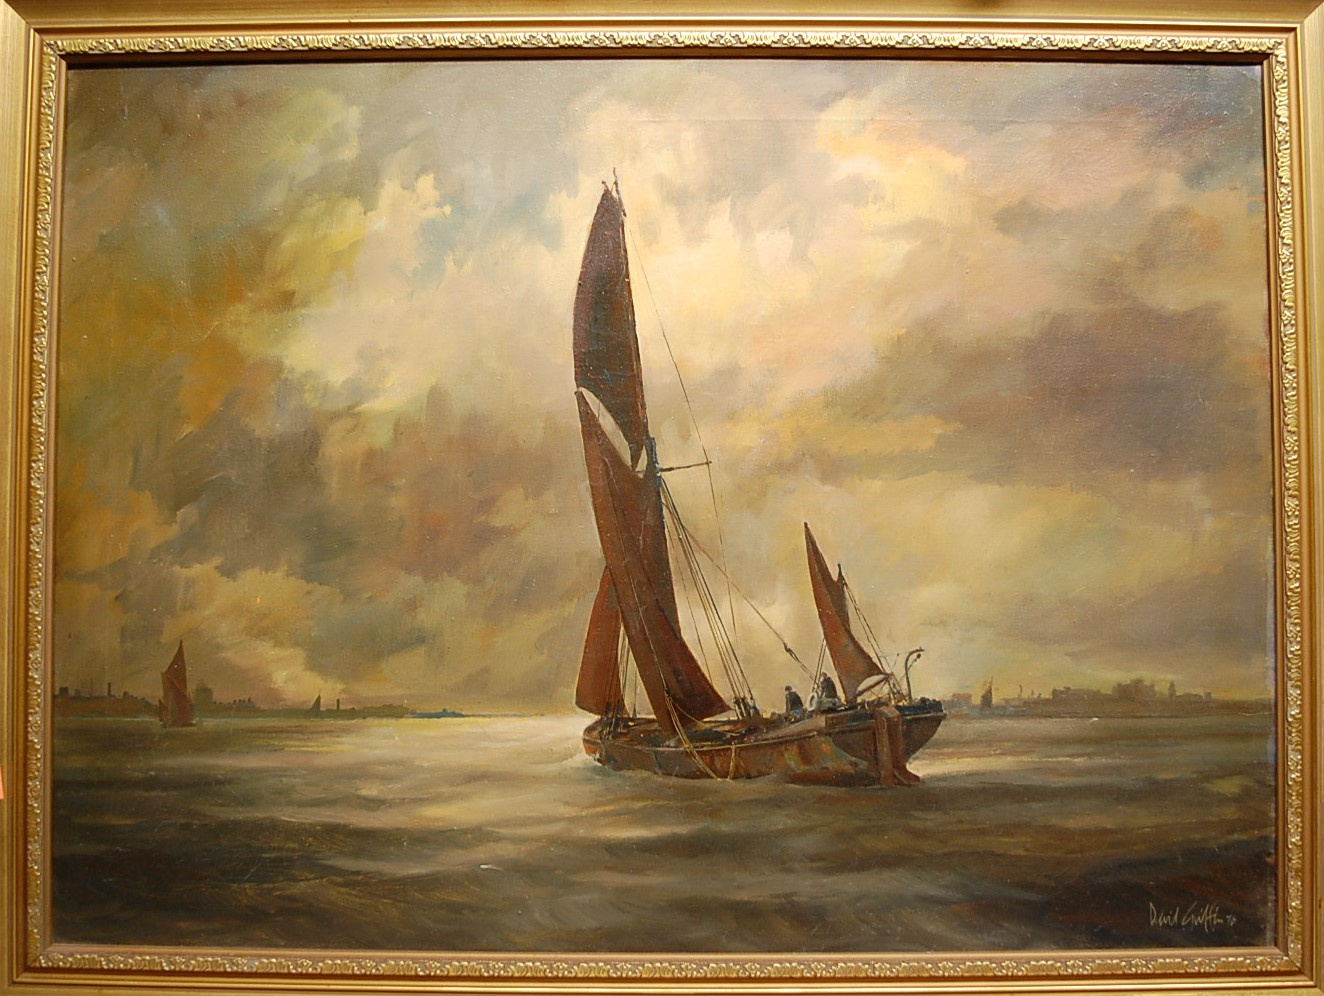 Lot 1002 - David Griffin - Sailing barge under way, oil on canvas, signed and dated '76 lower right, with